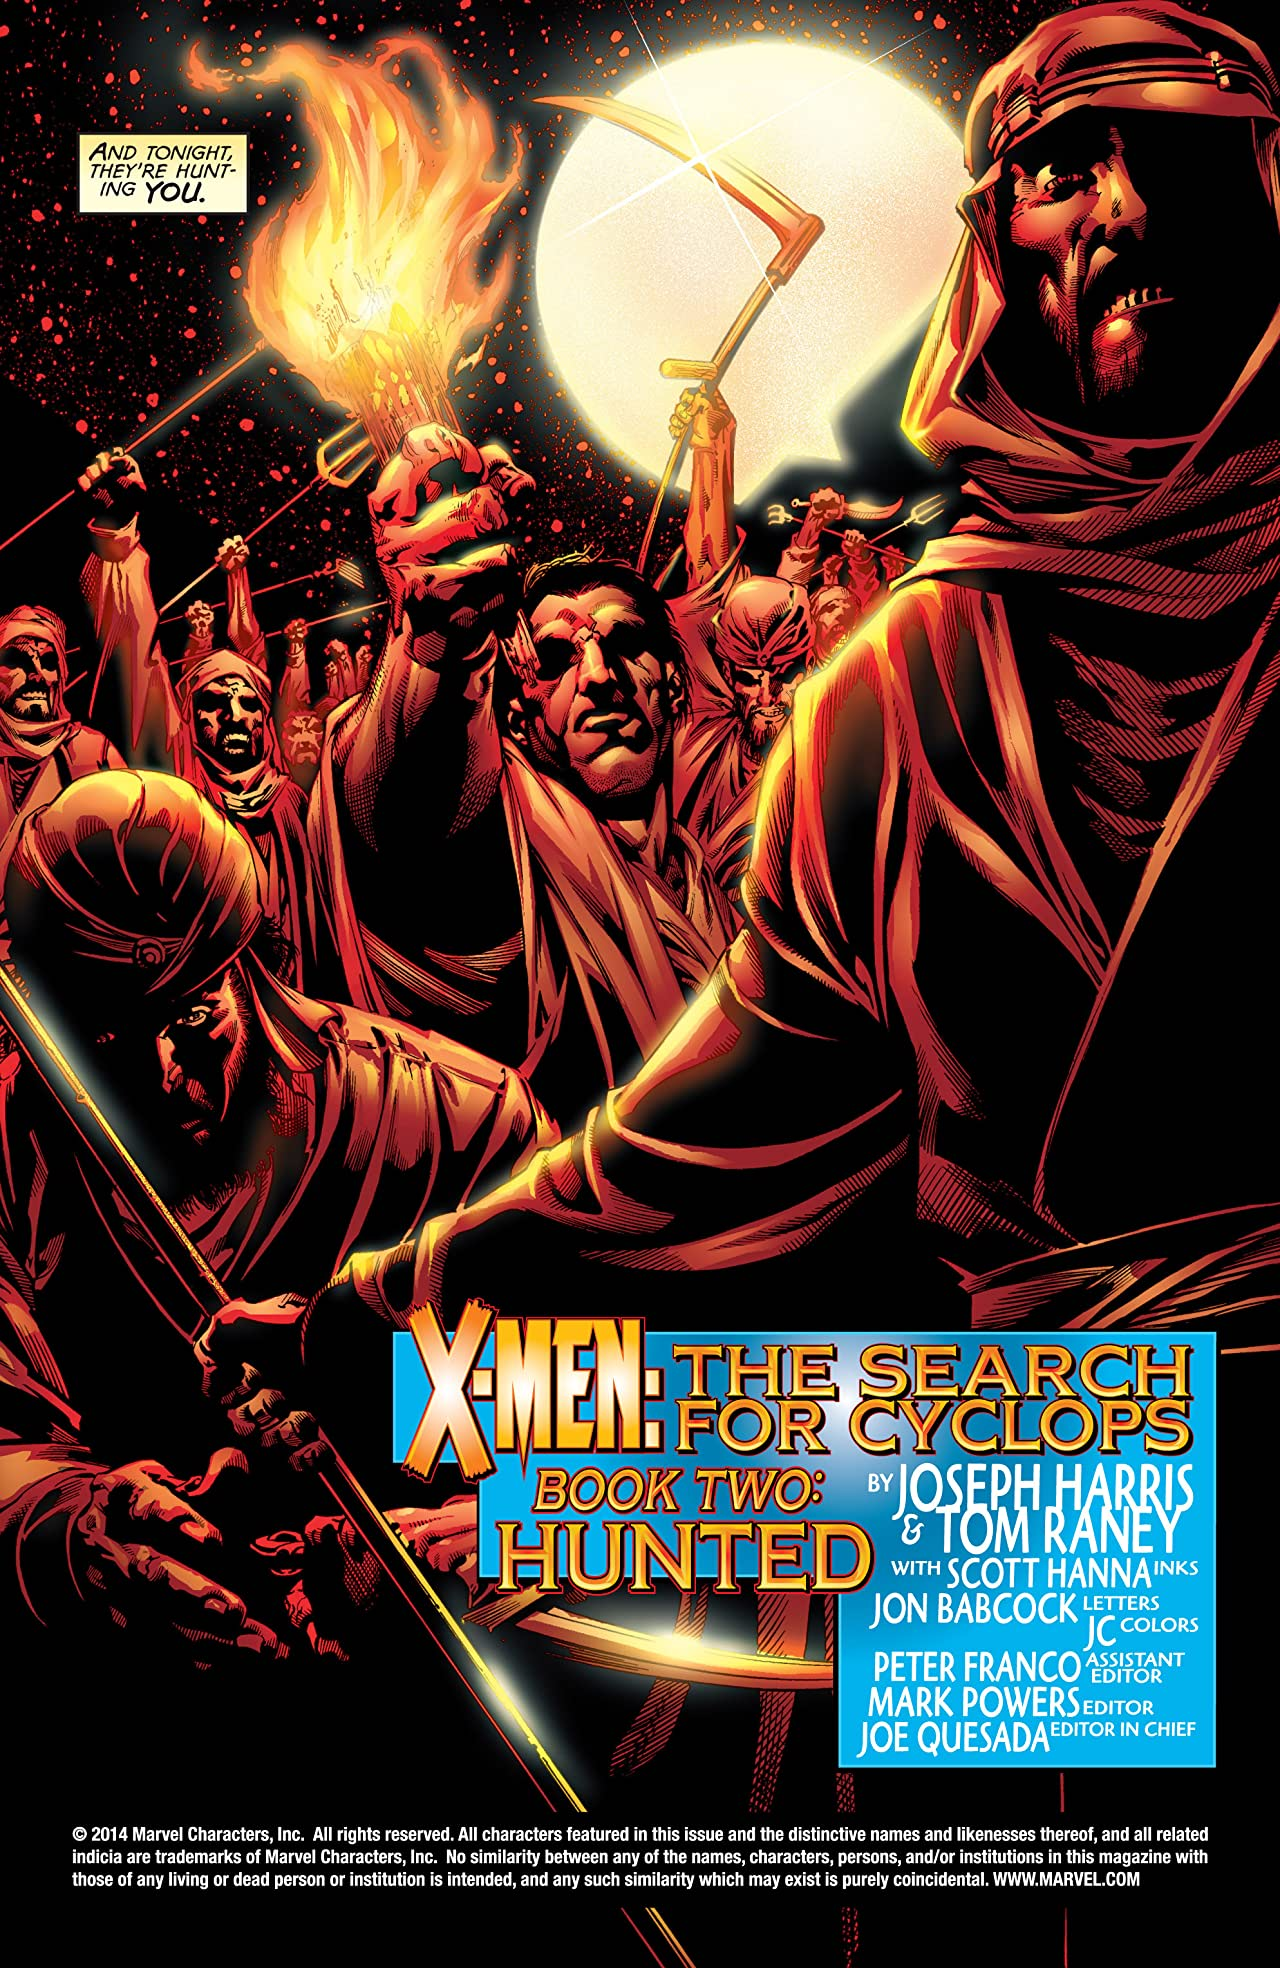 X-Men: The Search For Cyclops #2 (of 4)